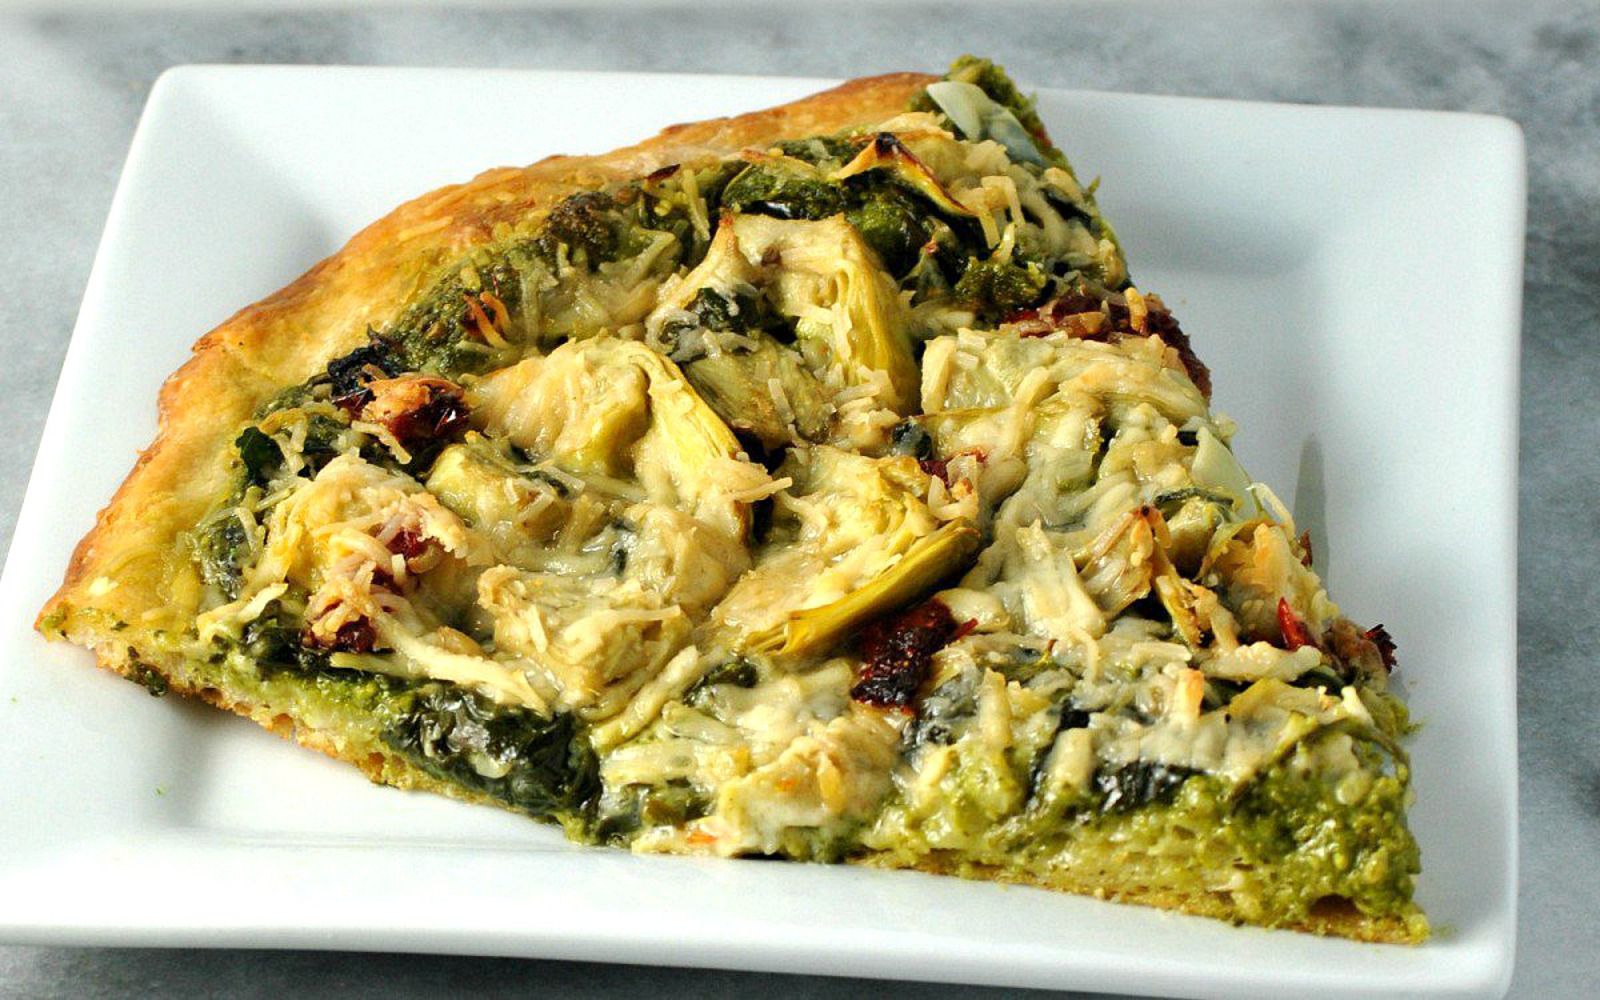 VEgan Artichoke and Spinach Pesto Pizza